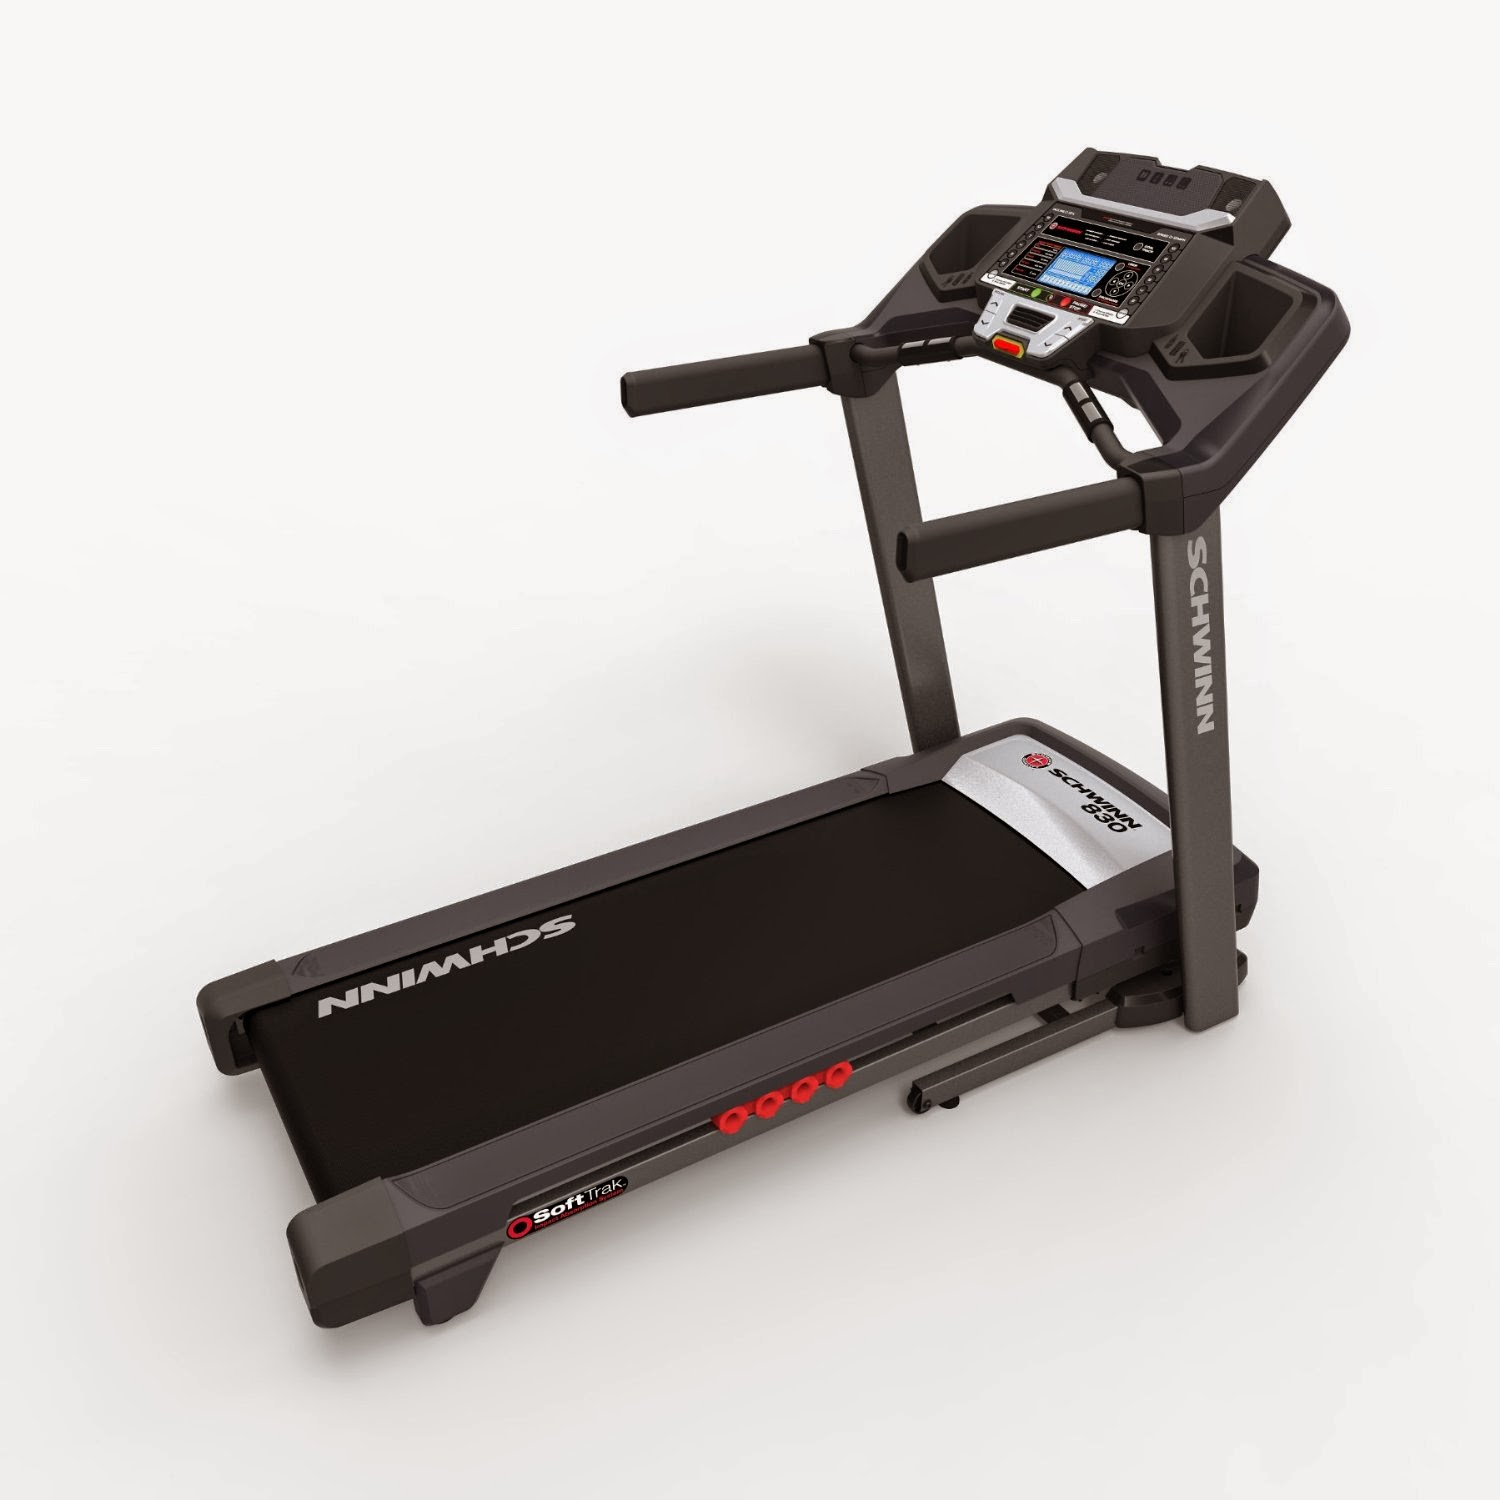 "Schwinn 830 Treadmill, review features, SoftTrack cushioning deck, 2.5"" crowned rollers, folding design, acoustic speakers, MP3 input, USB port, data export, fan, media shelf, 0-12 MPH, 22 programs, 0-12% incline"